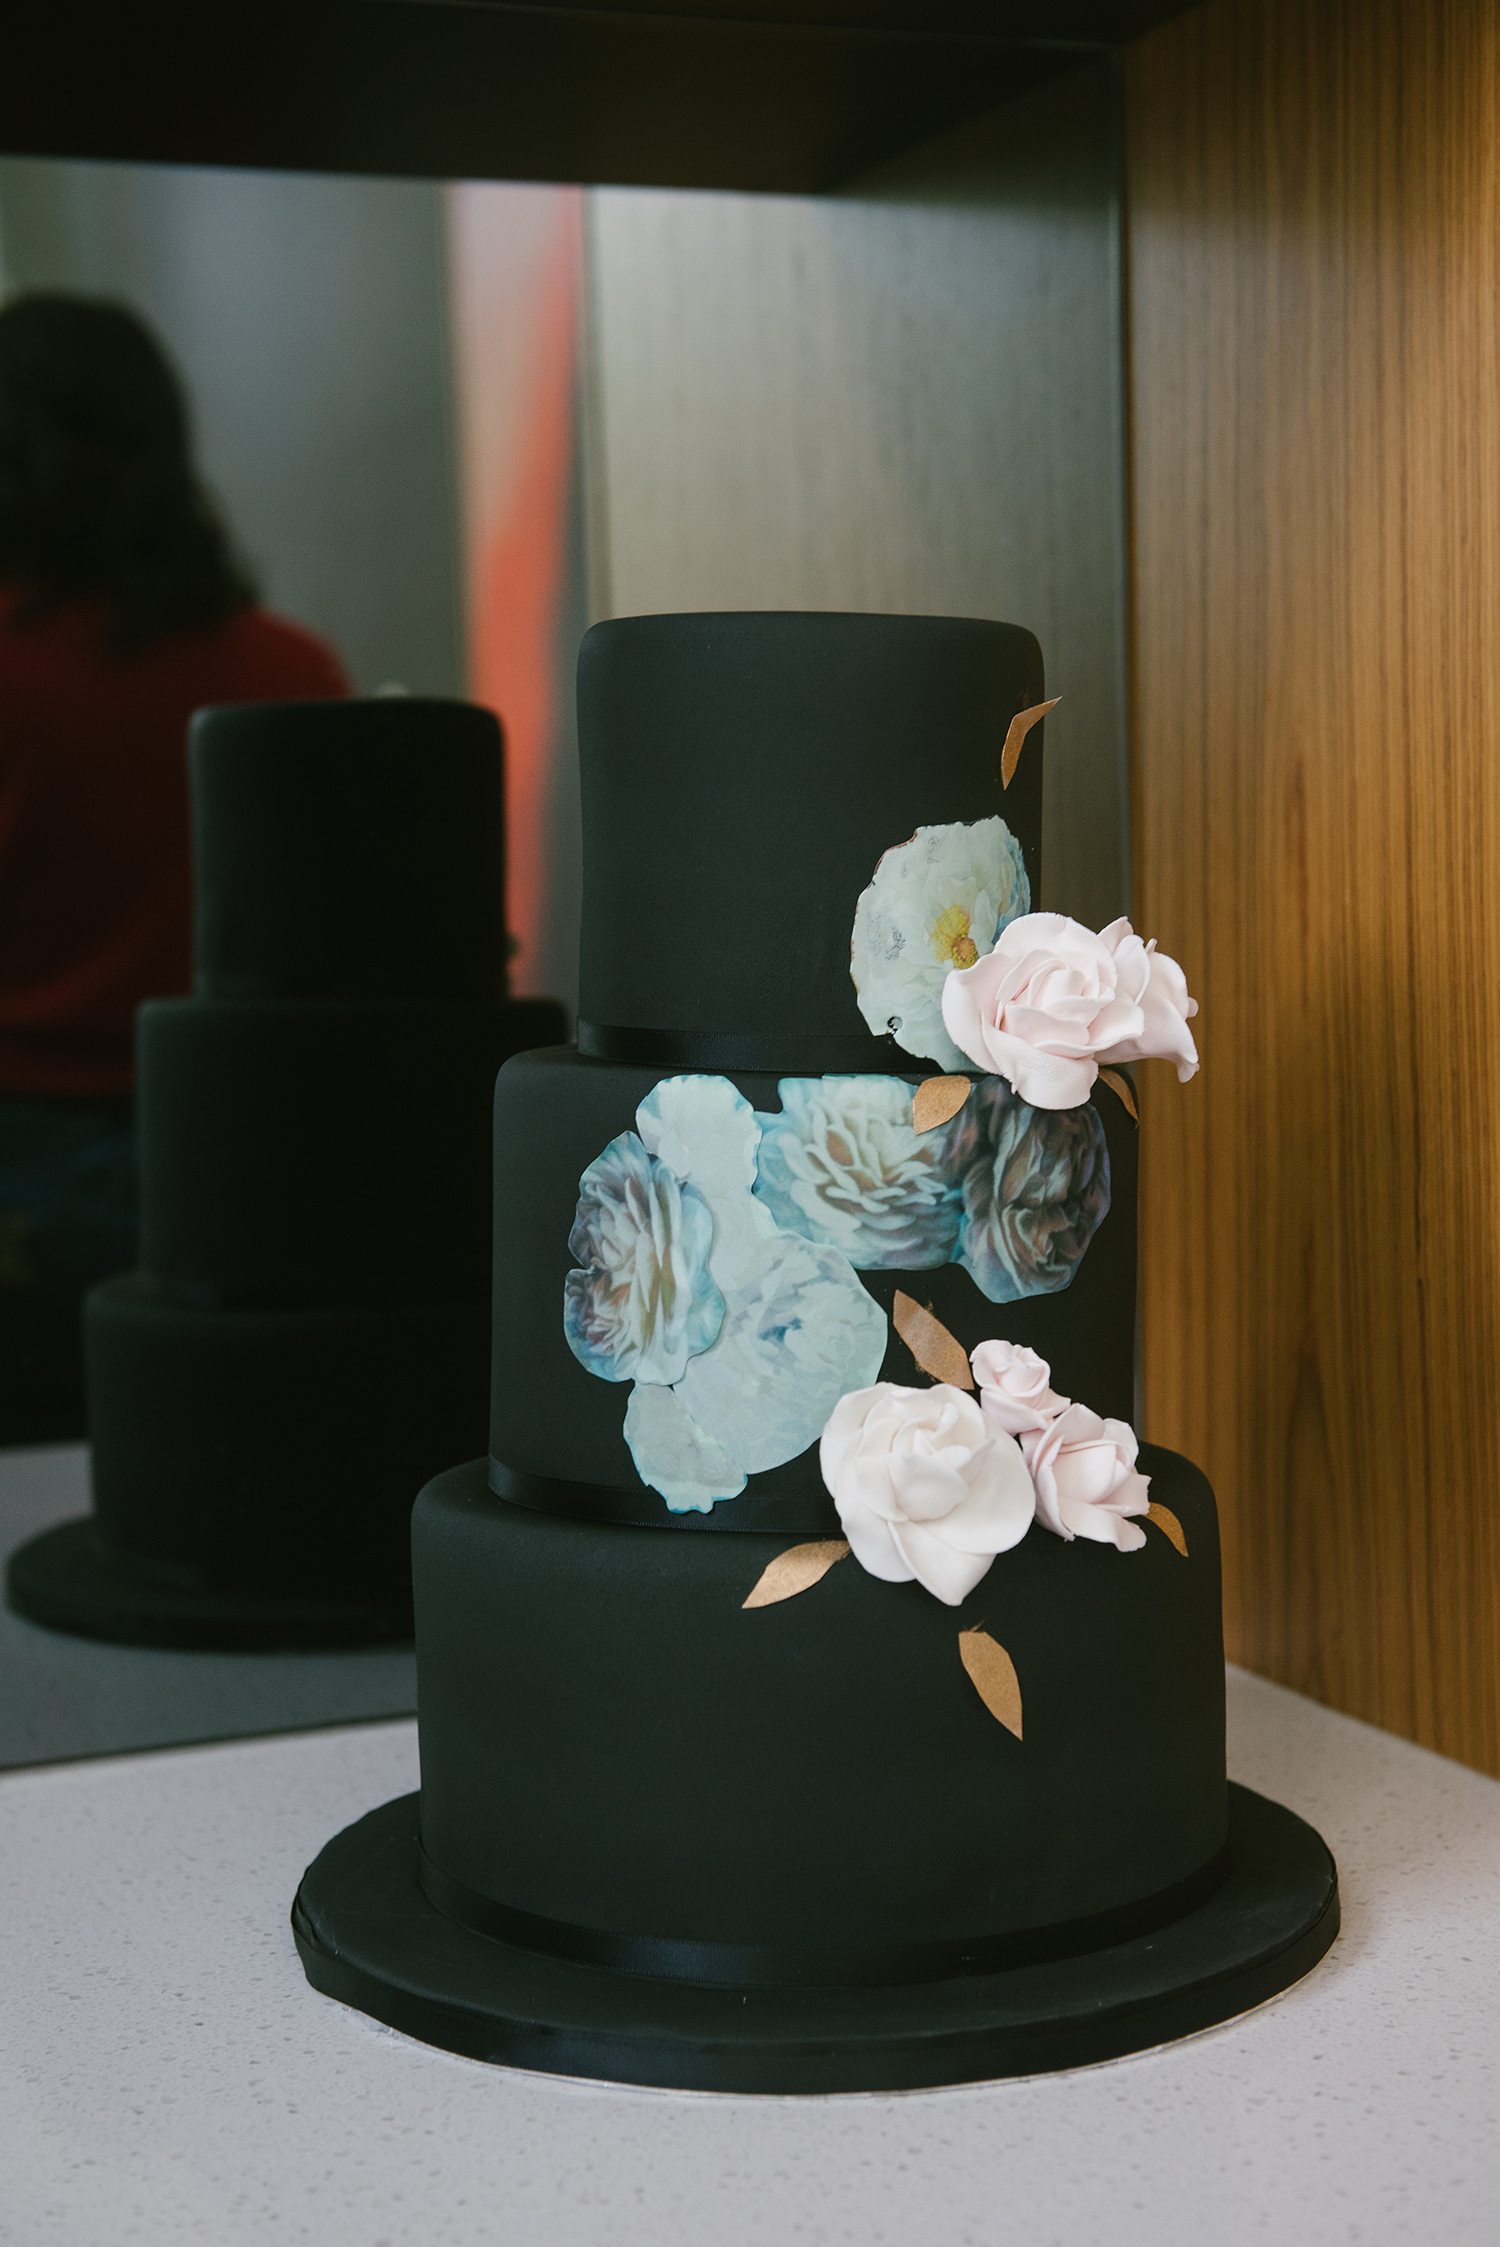 Covered In Black But Decadent Inside This 3 Tier Cake Was Made Of Vanilla Layers Caramel Buttercream Between